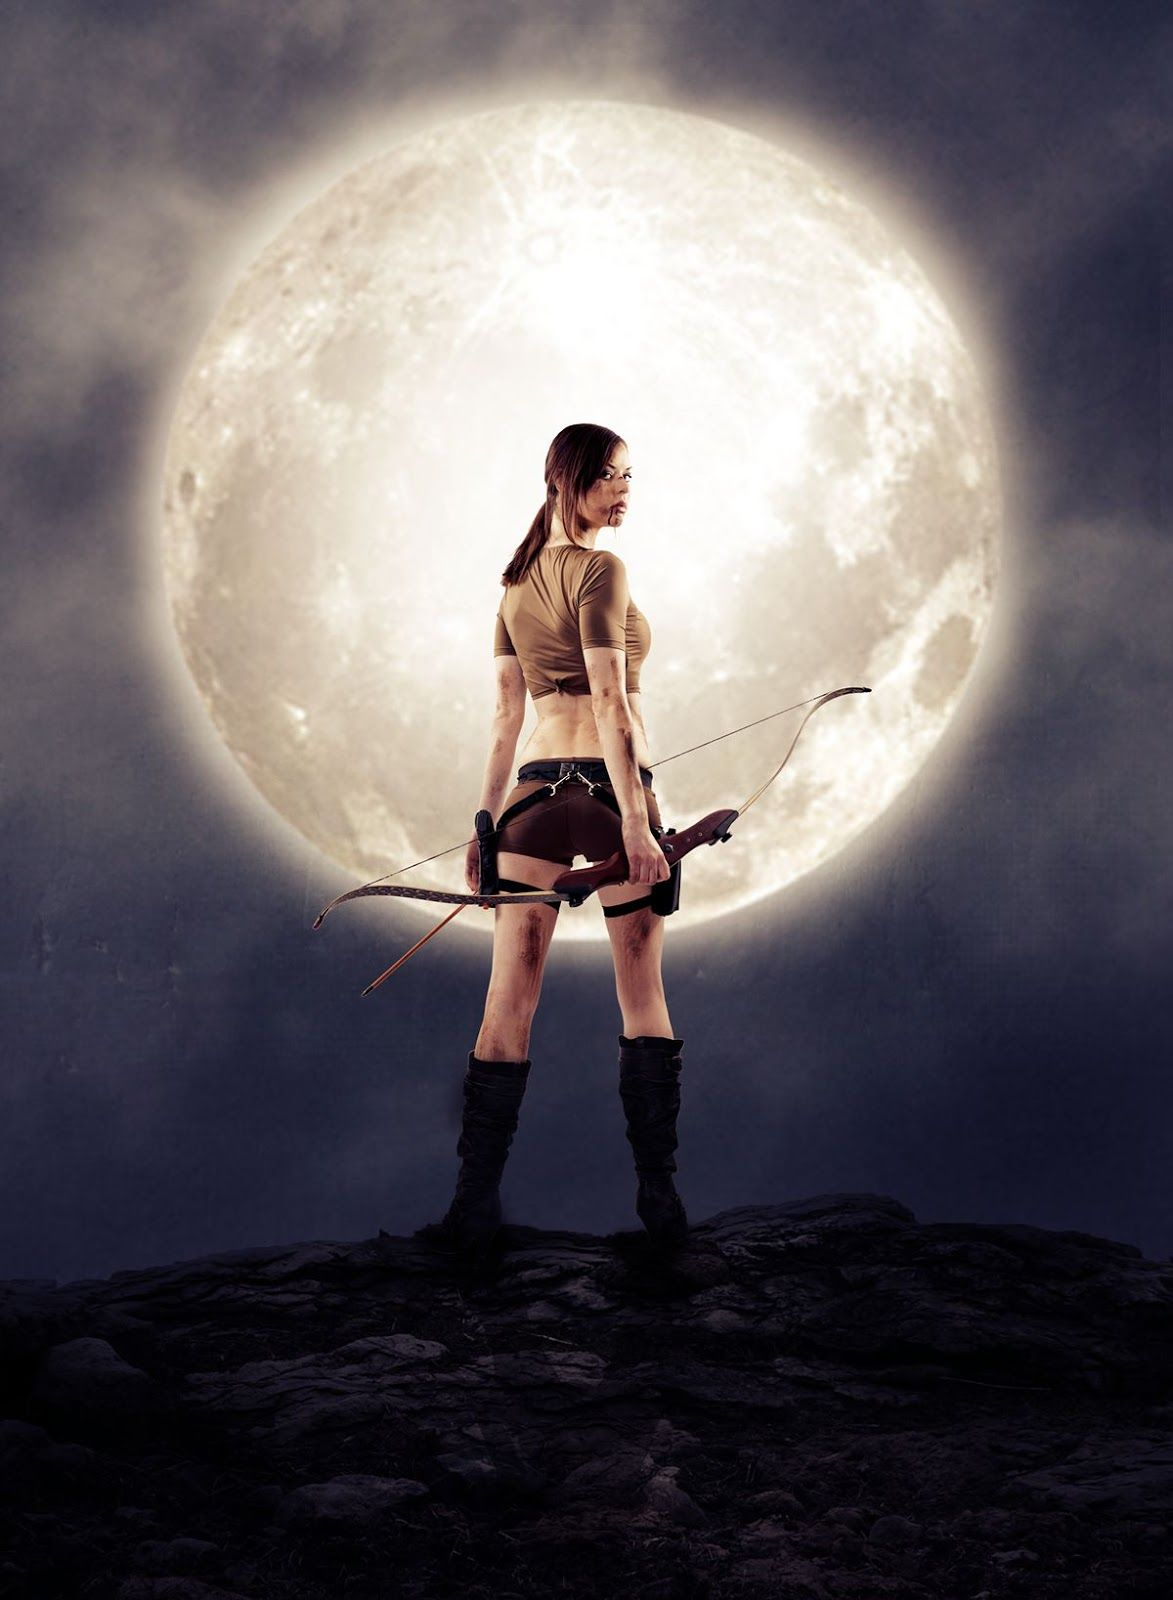 warrior woman with moon photo manipulation effects in